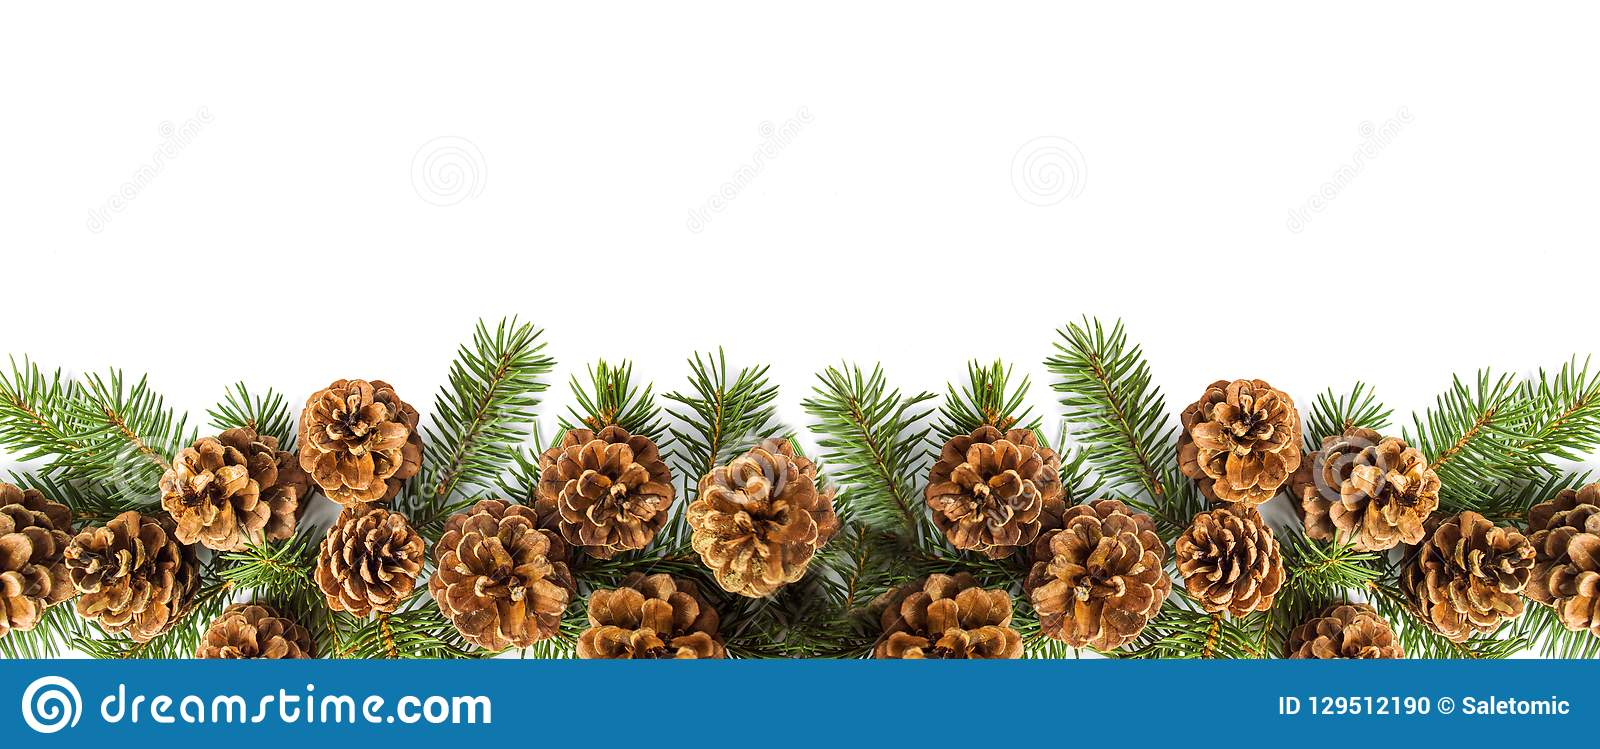 Pine cones festive background with fir branch